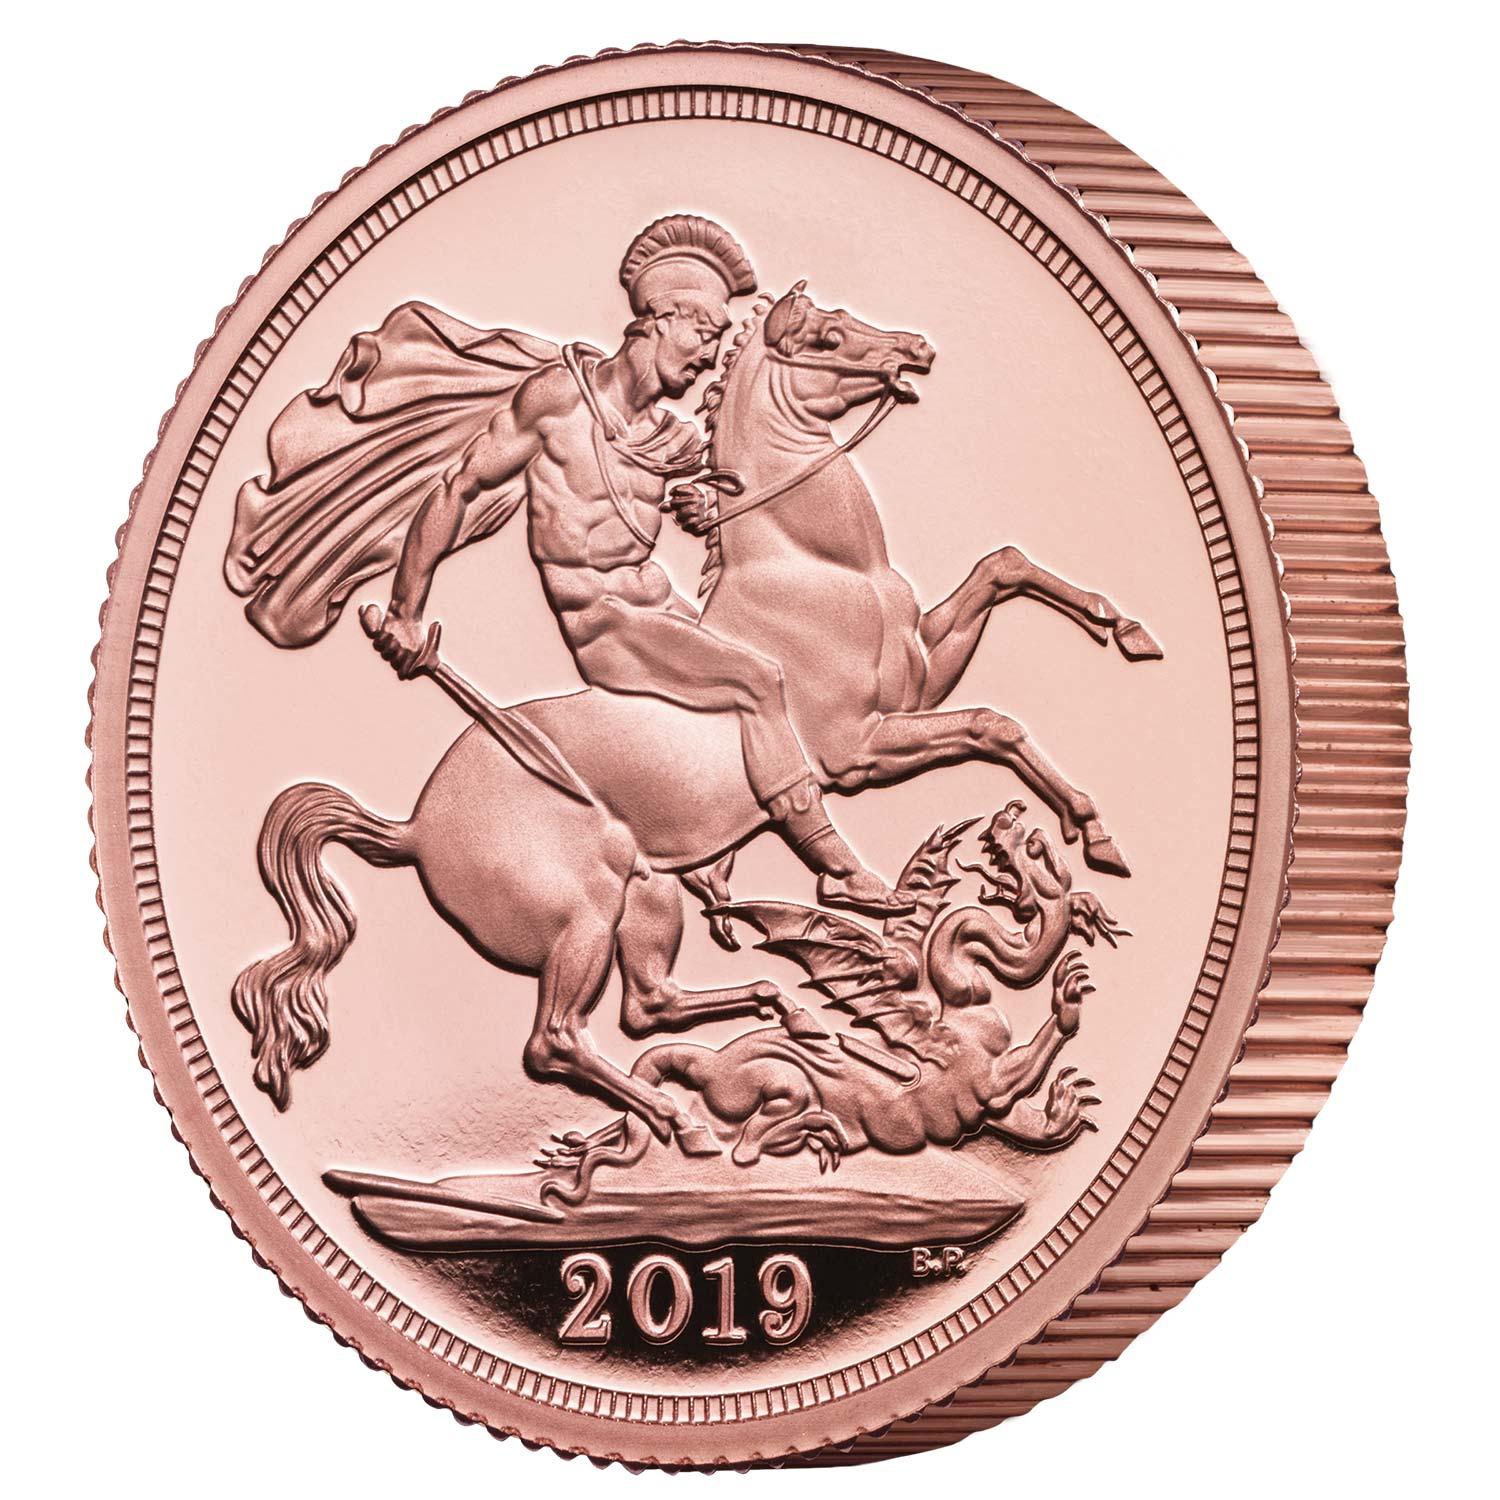 The Piedfort Sovereign 2019 Gold Proof Coin